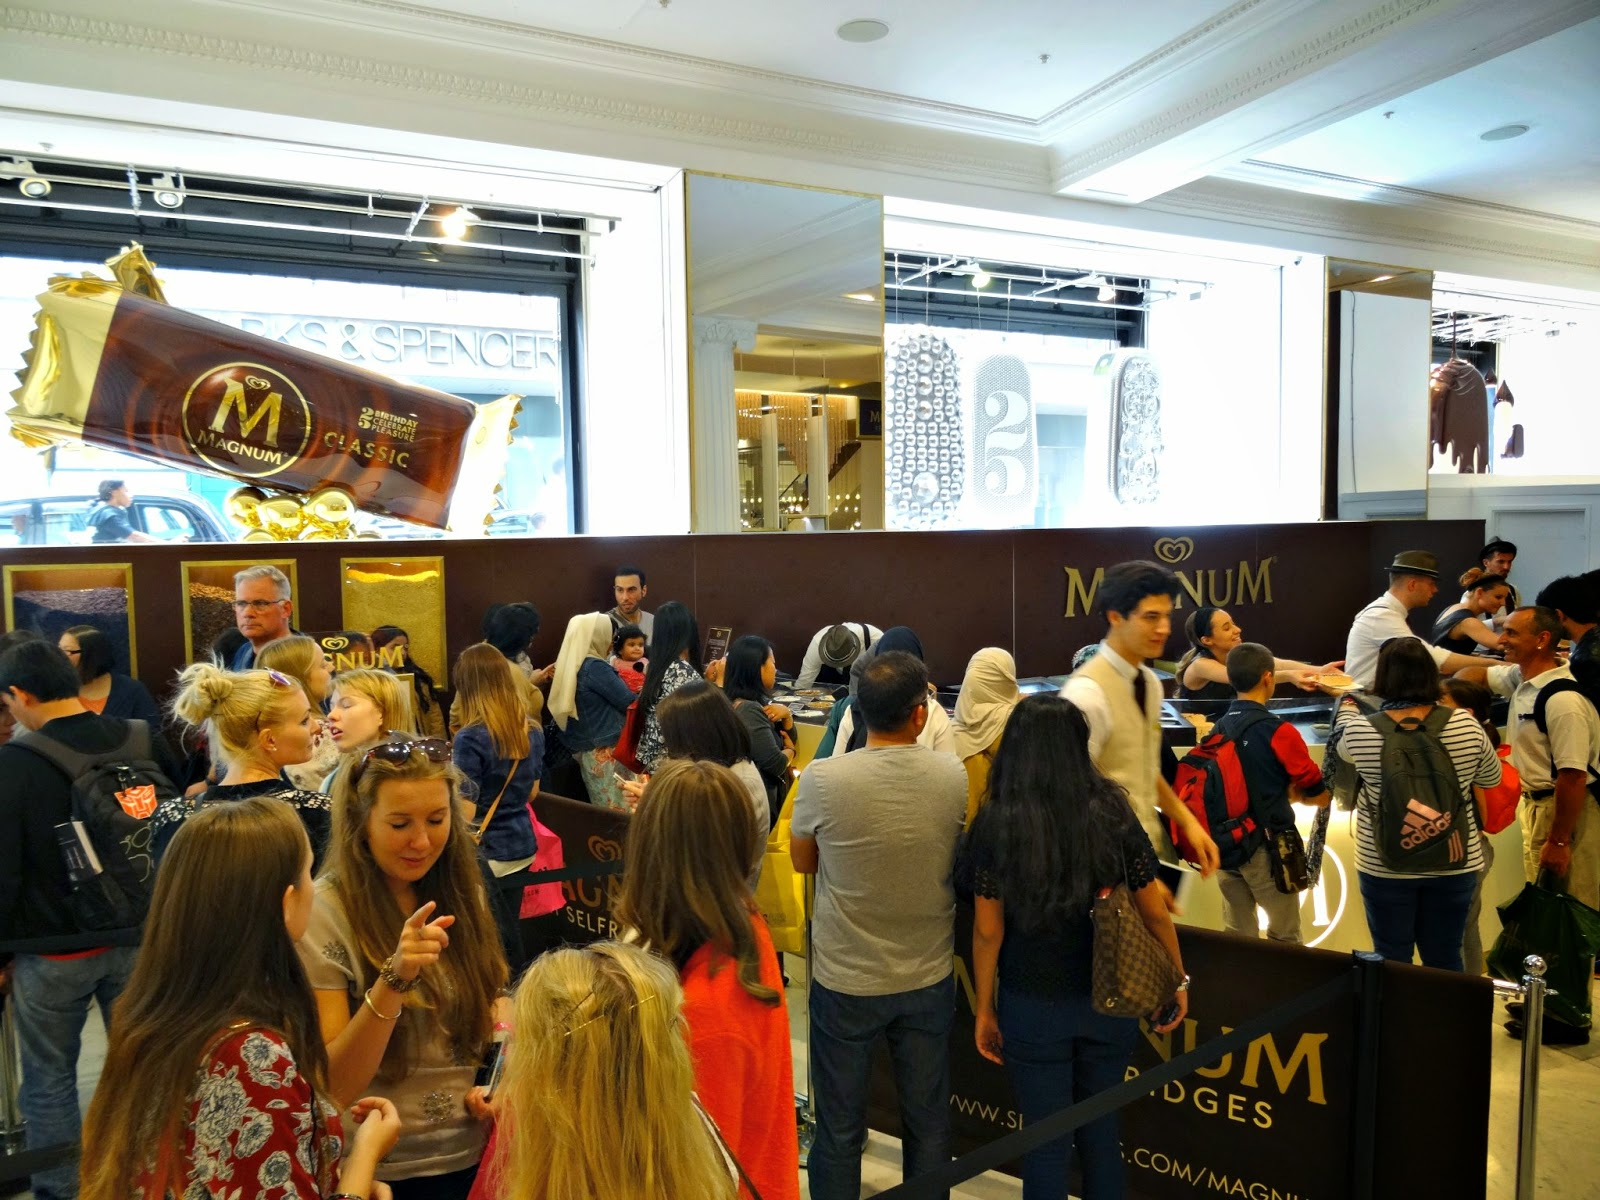 Magnum at selfridges London